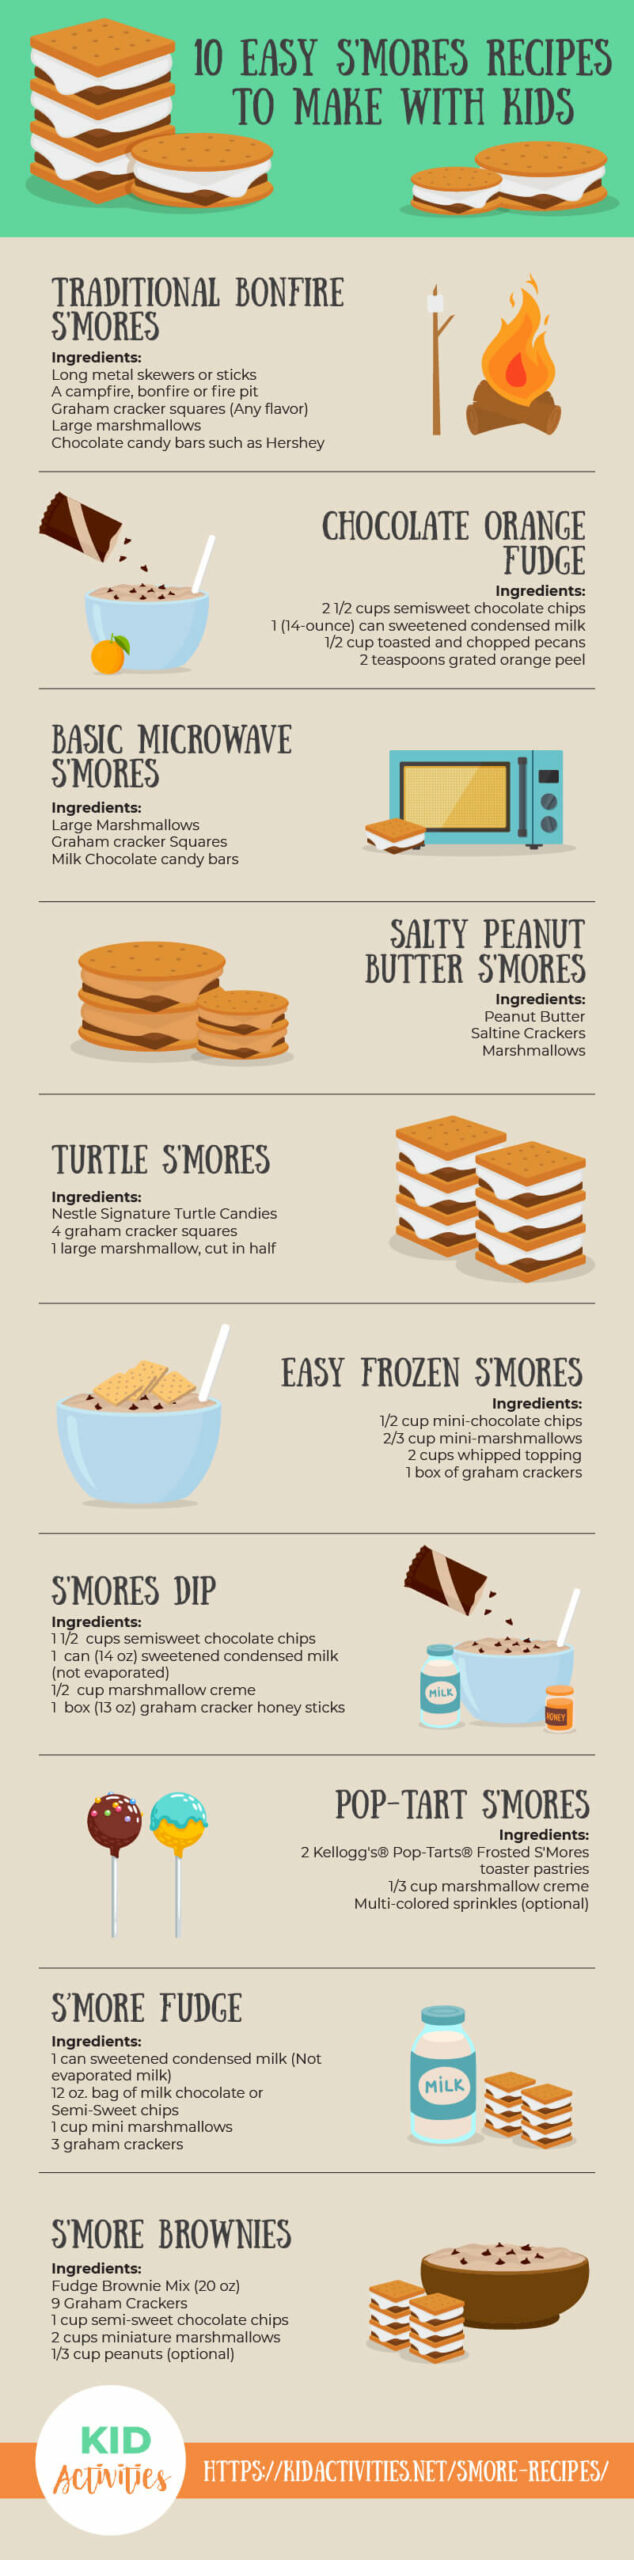 A collection of 10 tasty smore recipes. These recipes can be made inside or outdoors, over a fire or in a microwave. [Infographic]